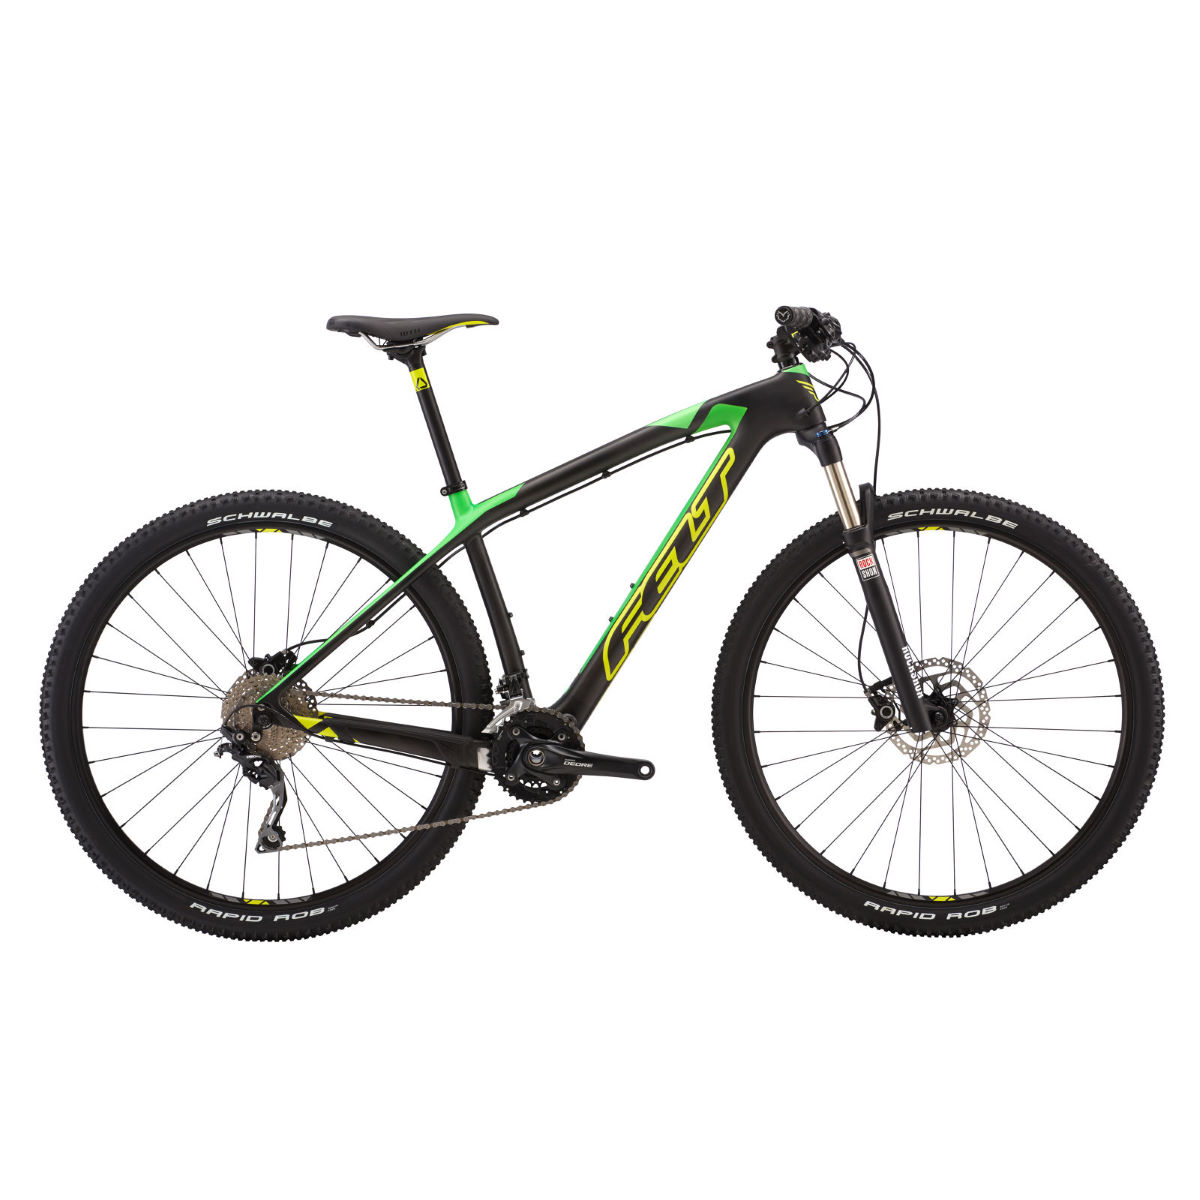 VTT Felt Nine 5 (2016) - 20'' Carbon/Green VTT semi-rigides